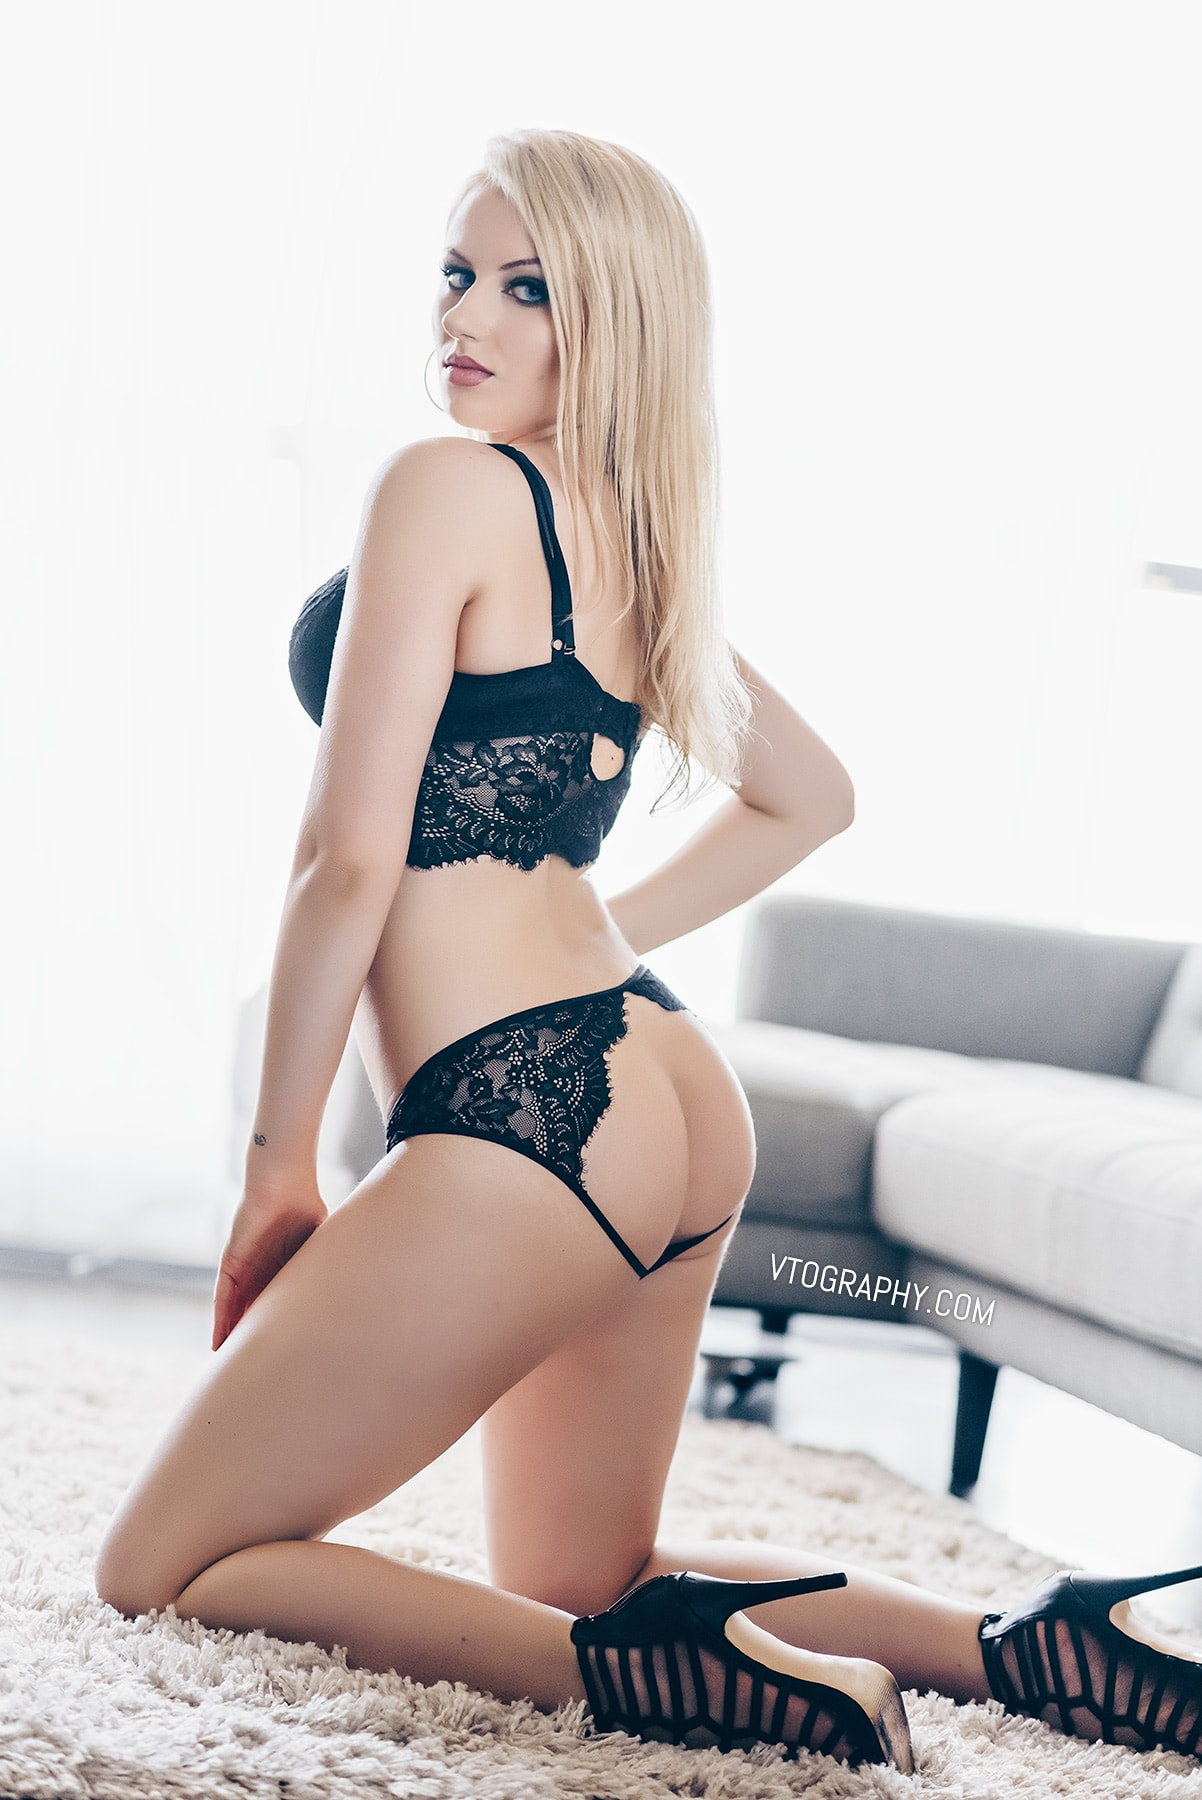 Valerie Muren lingerie photo shoot